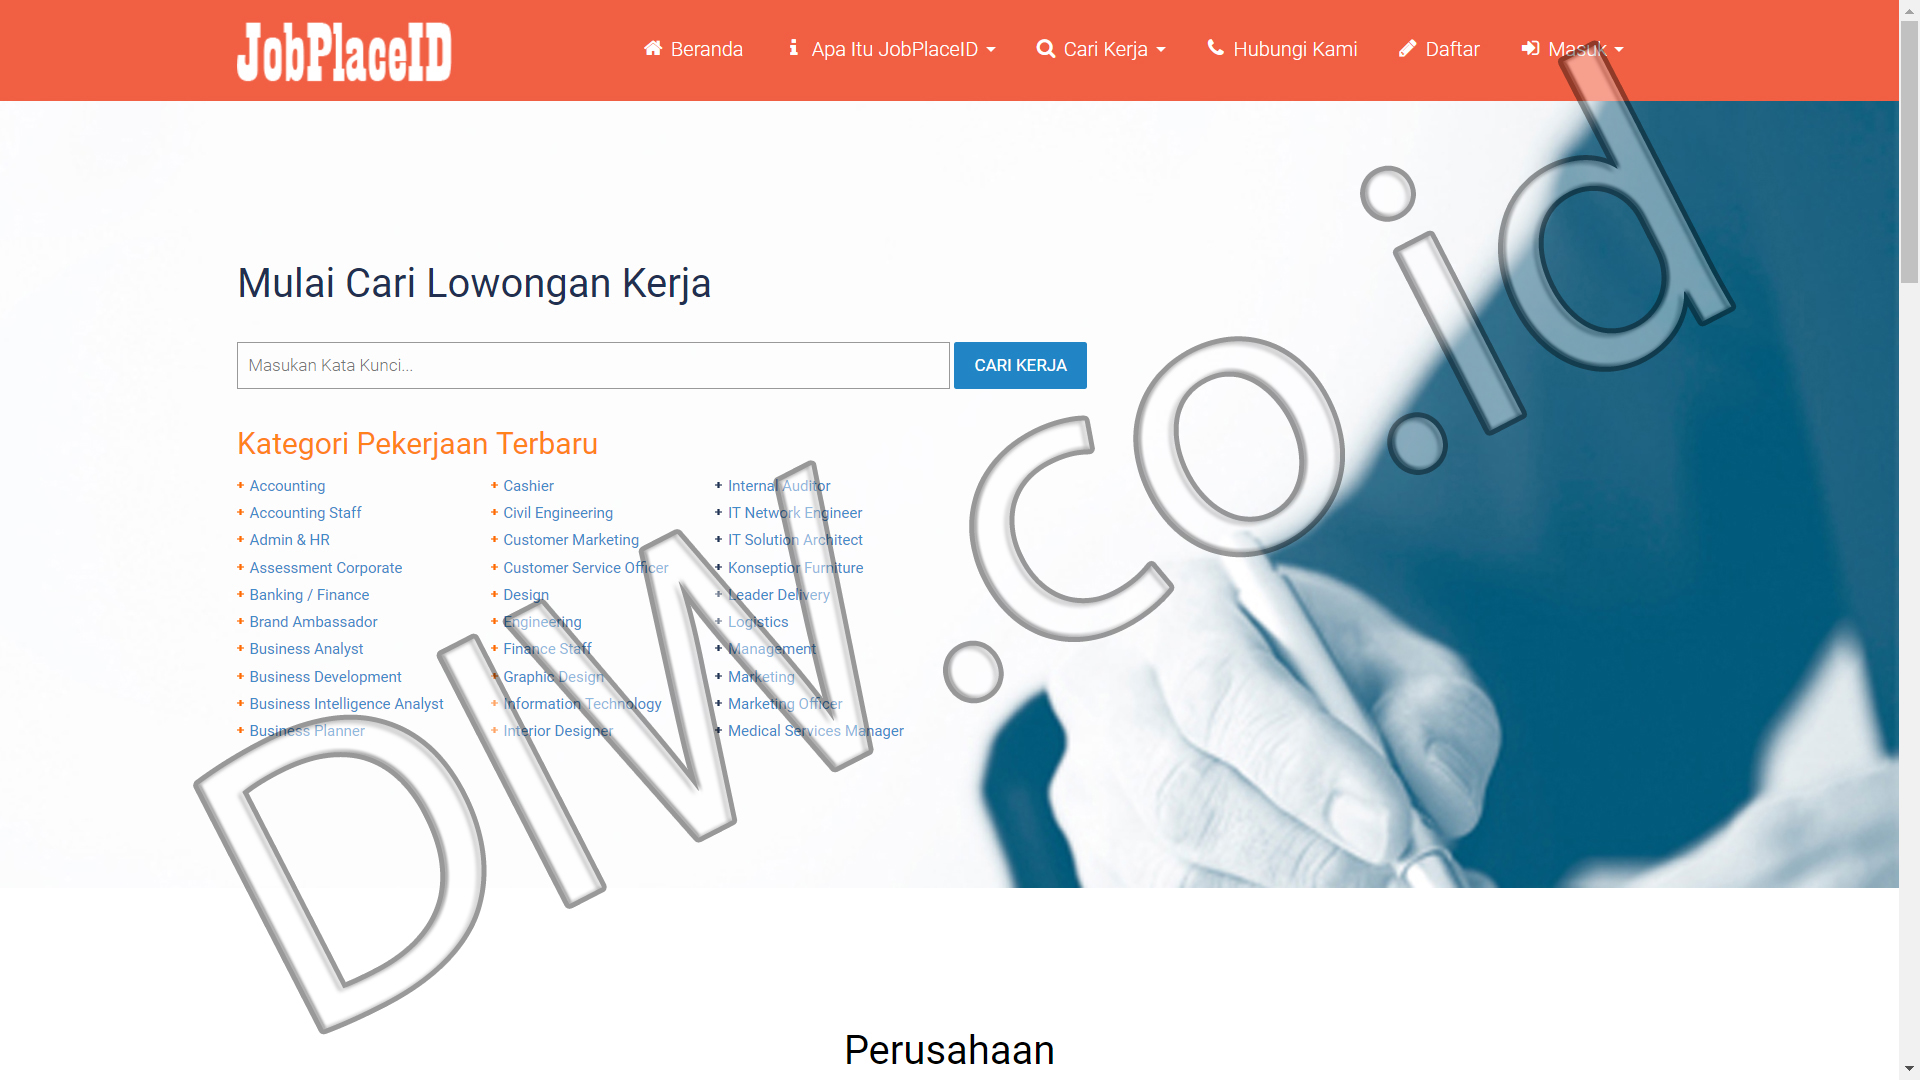 Portfolio 1 - Job Place ID - Andri Sunardi - Freelancer - Web Developer - CEO DIW.co.id